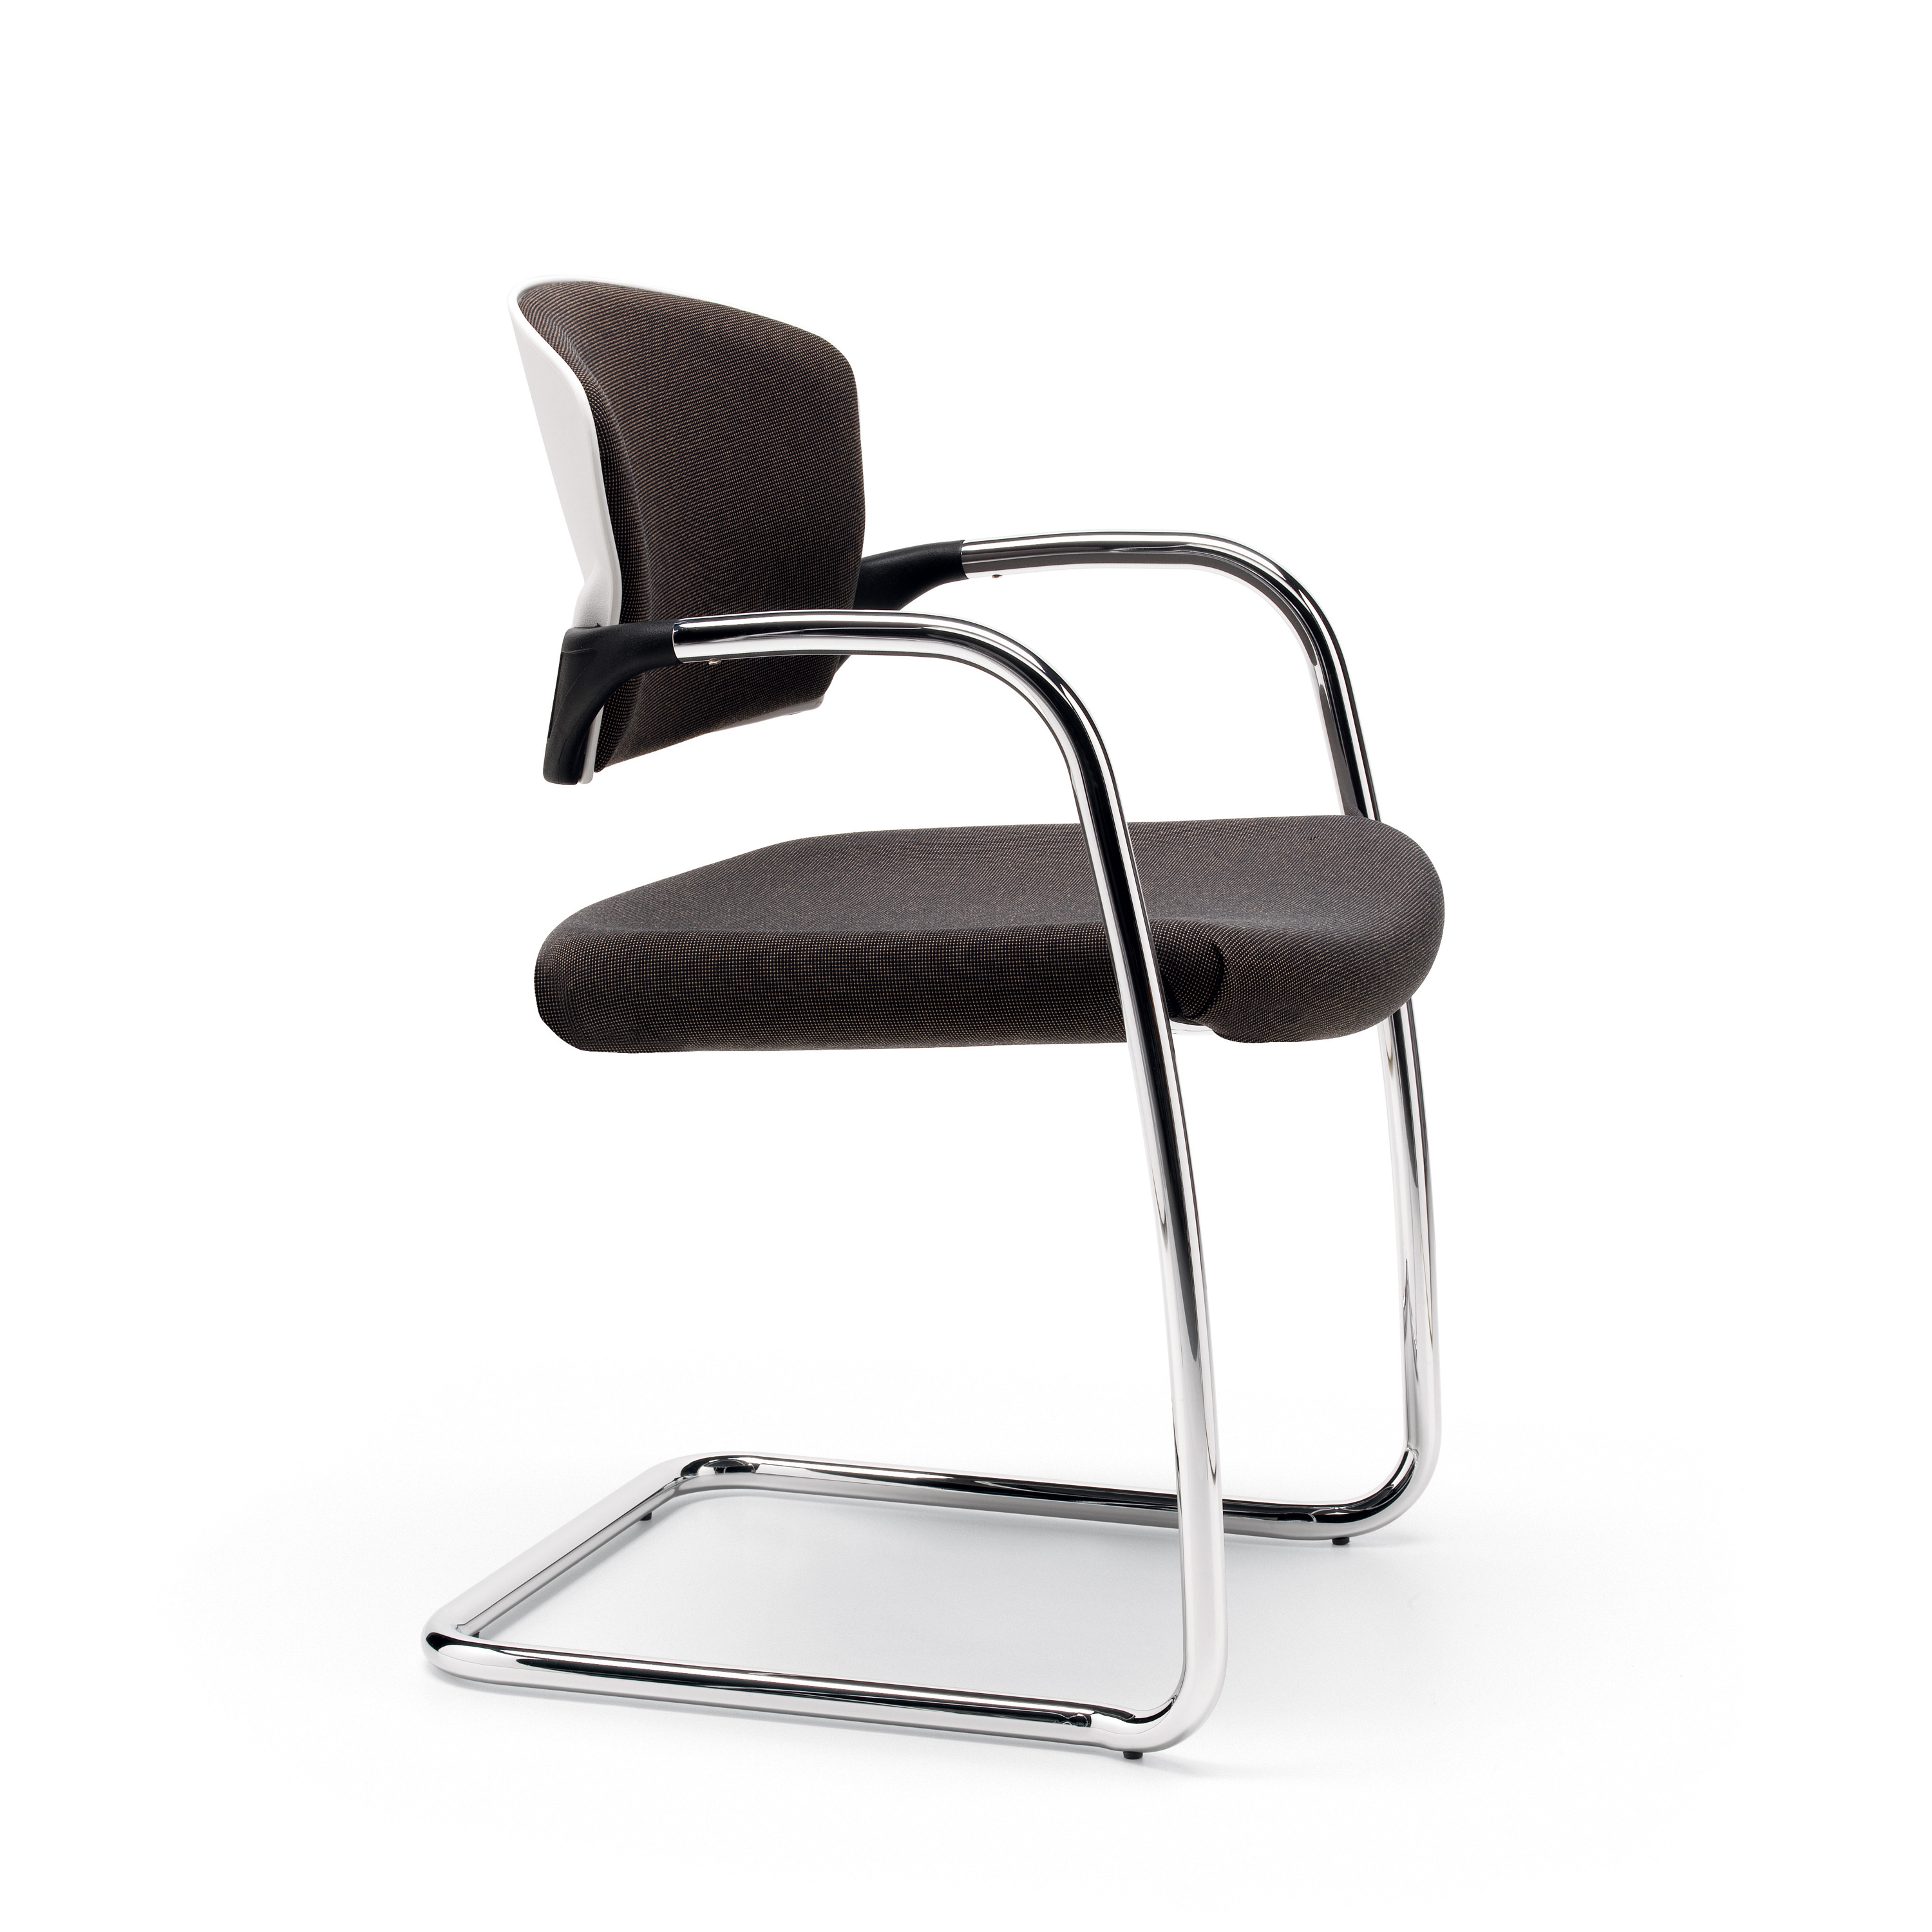 07S_Estel_Comfort&Relax_Office-chair&contract-conference_Aluminia